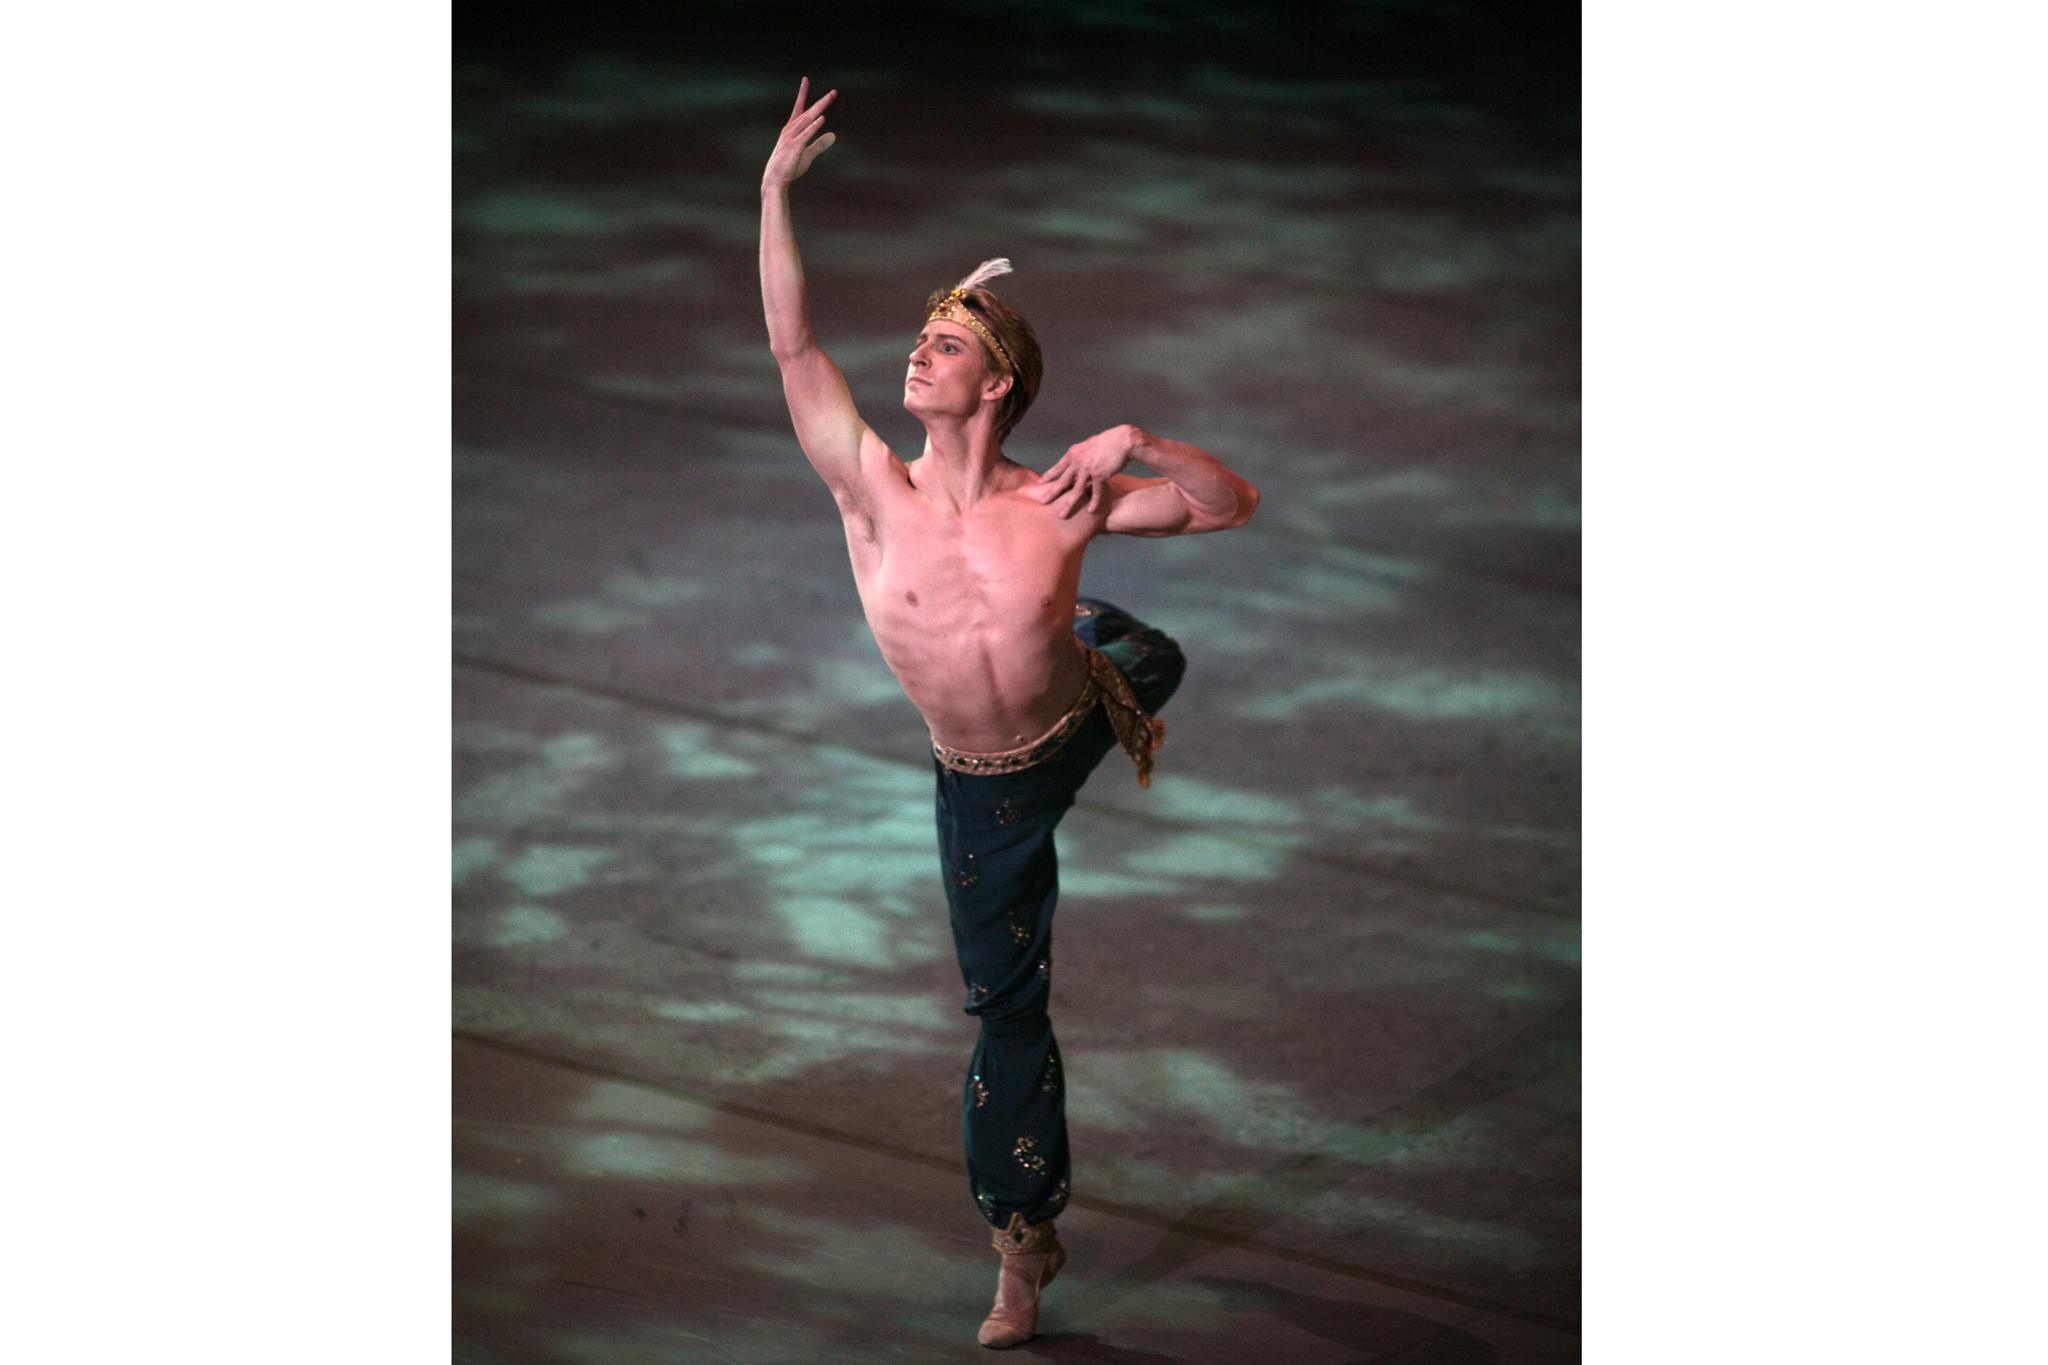 Former principal dancer of New York City Ballet, Ethan Stiefel